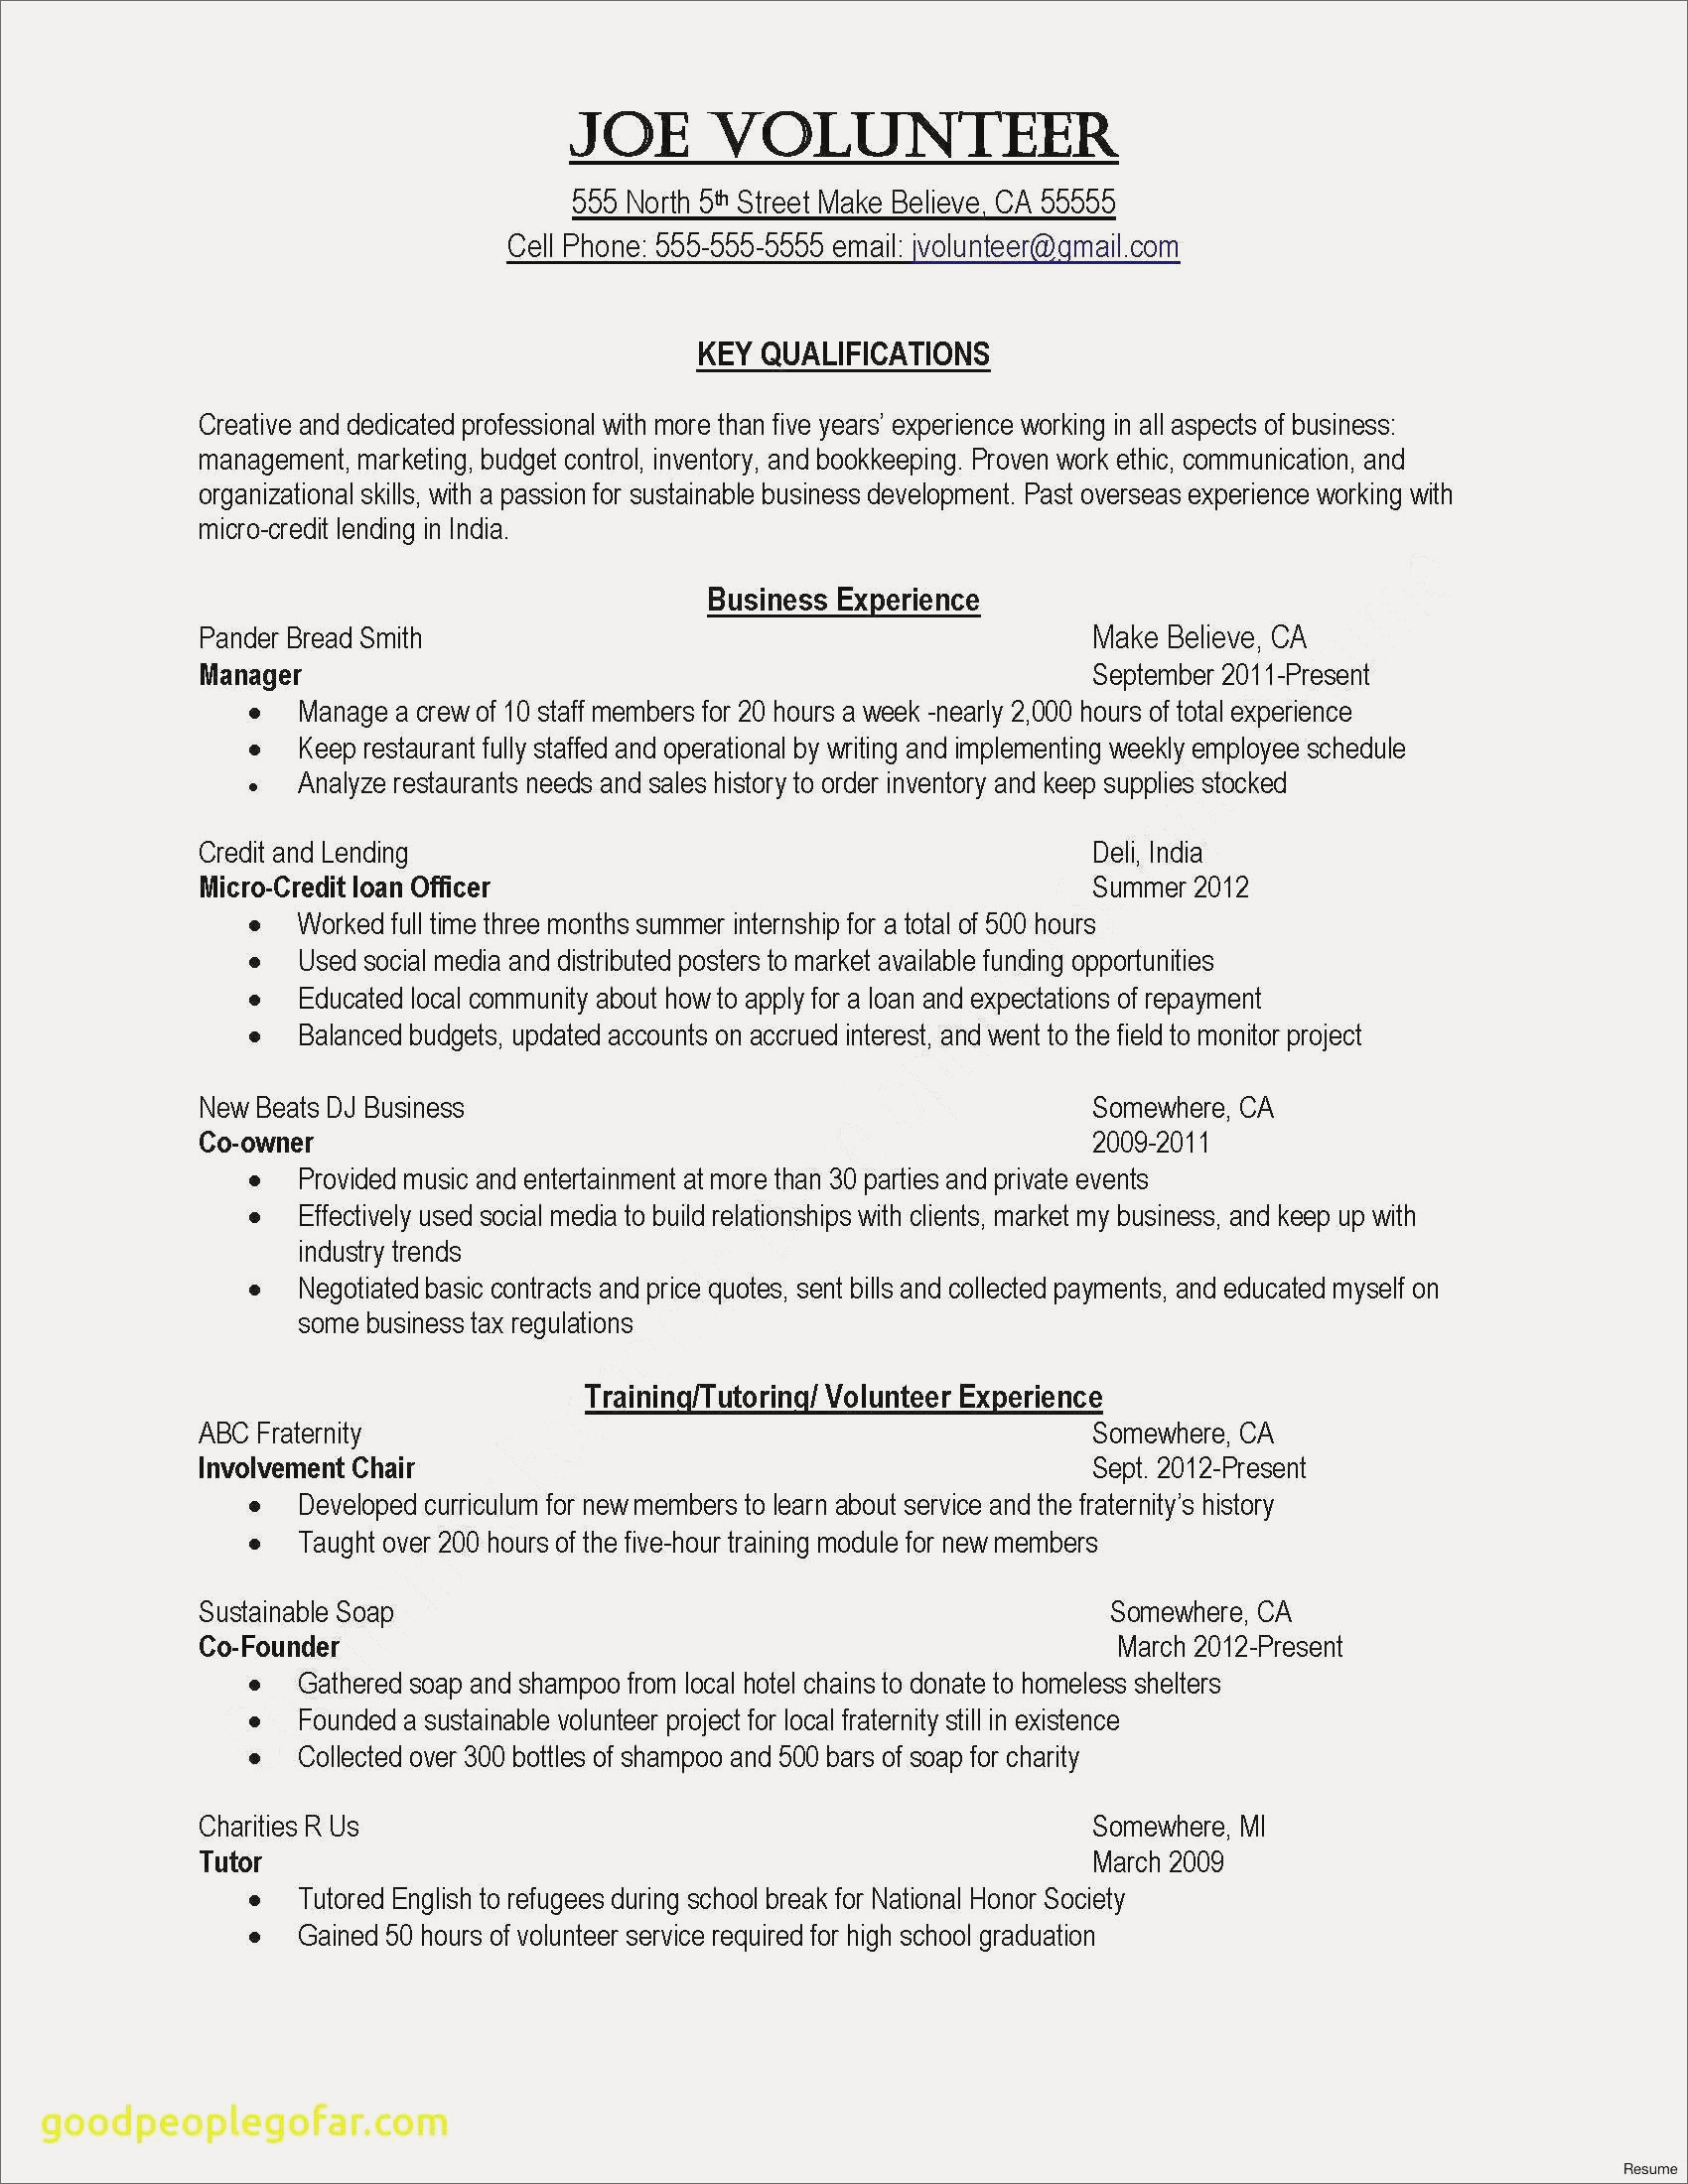 Combination Resume Template for Stay at Home Mom - New Stay at Home Mom Resume Sample